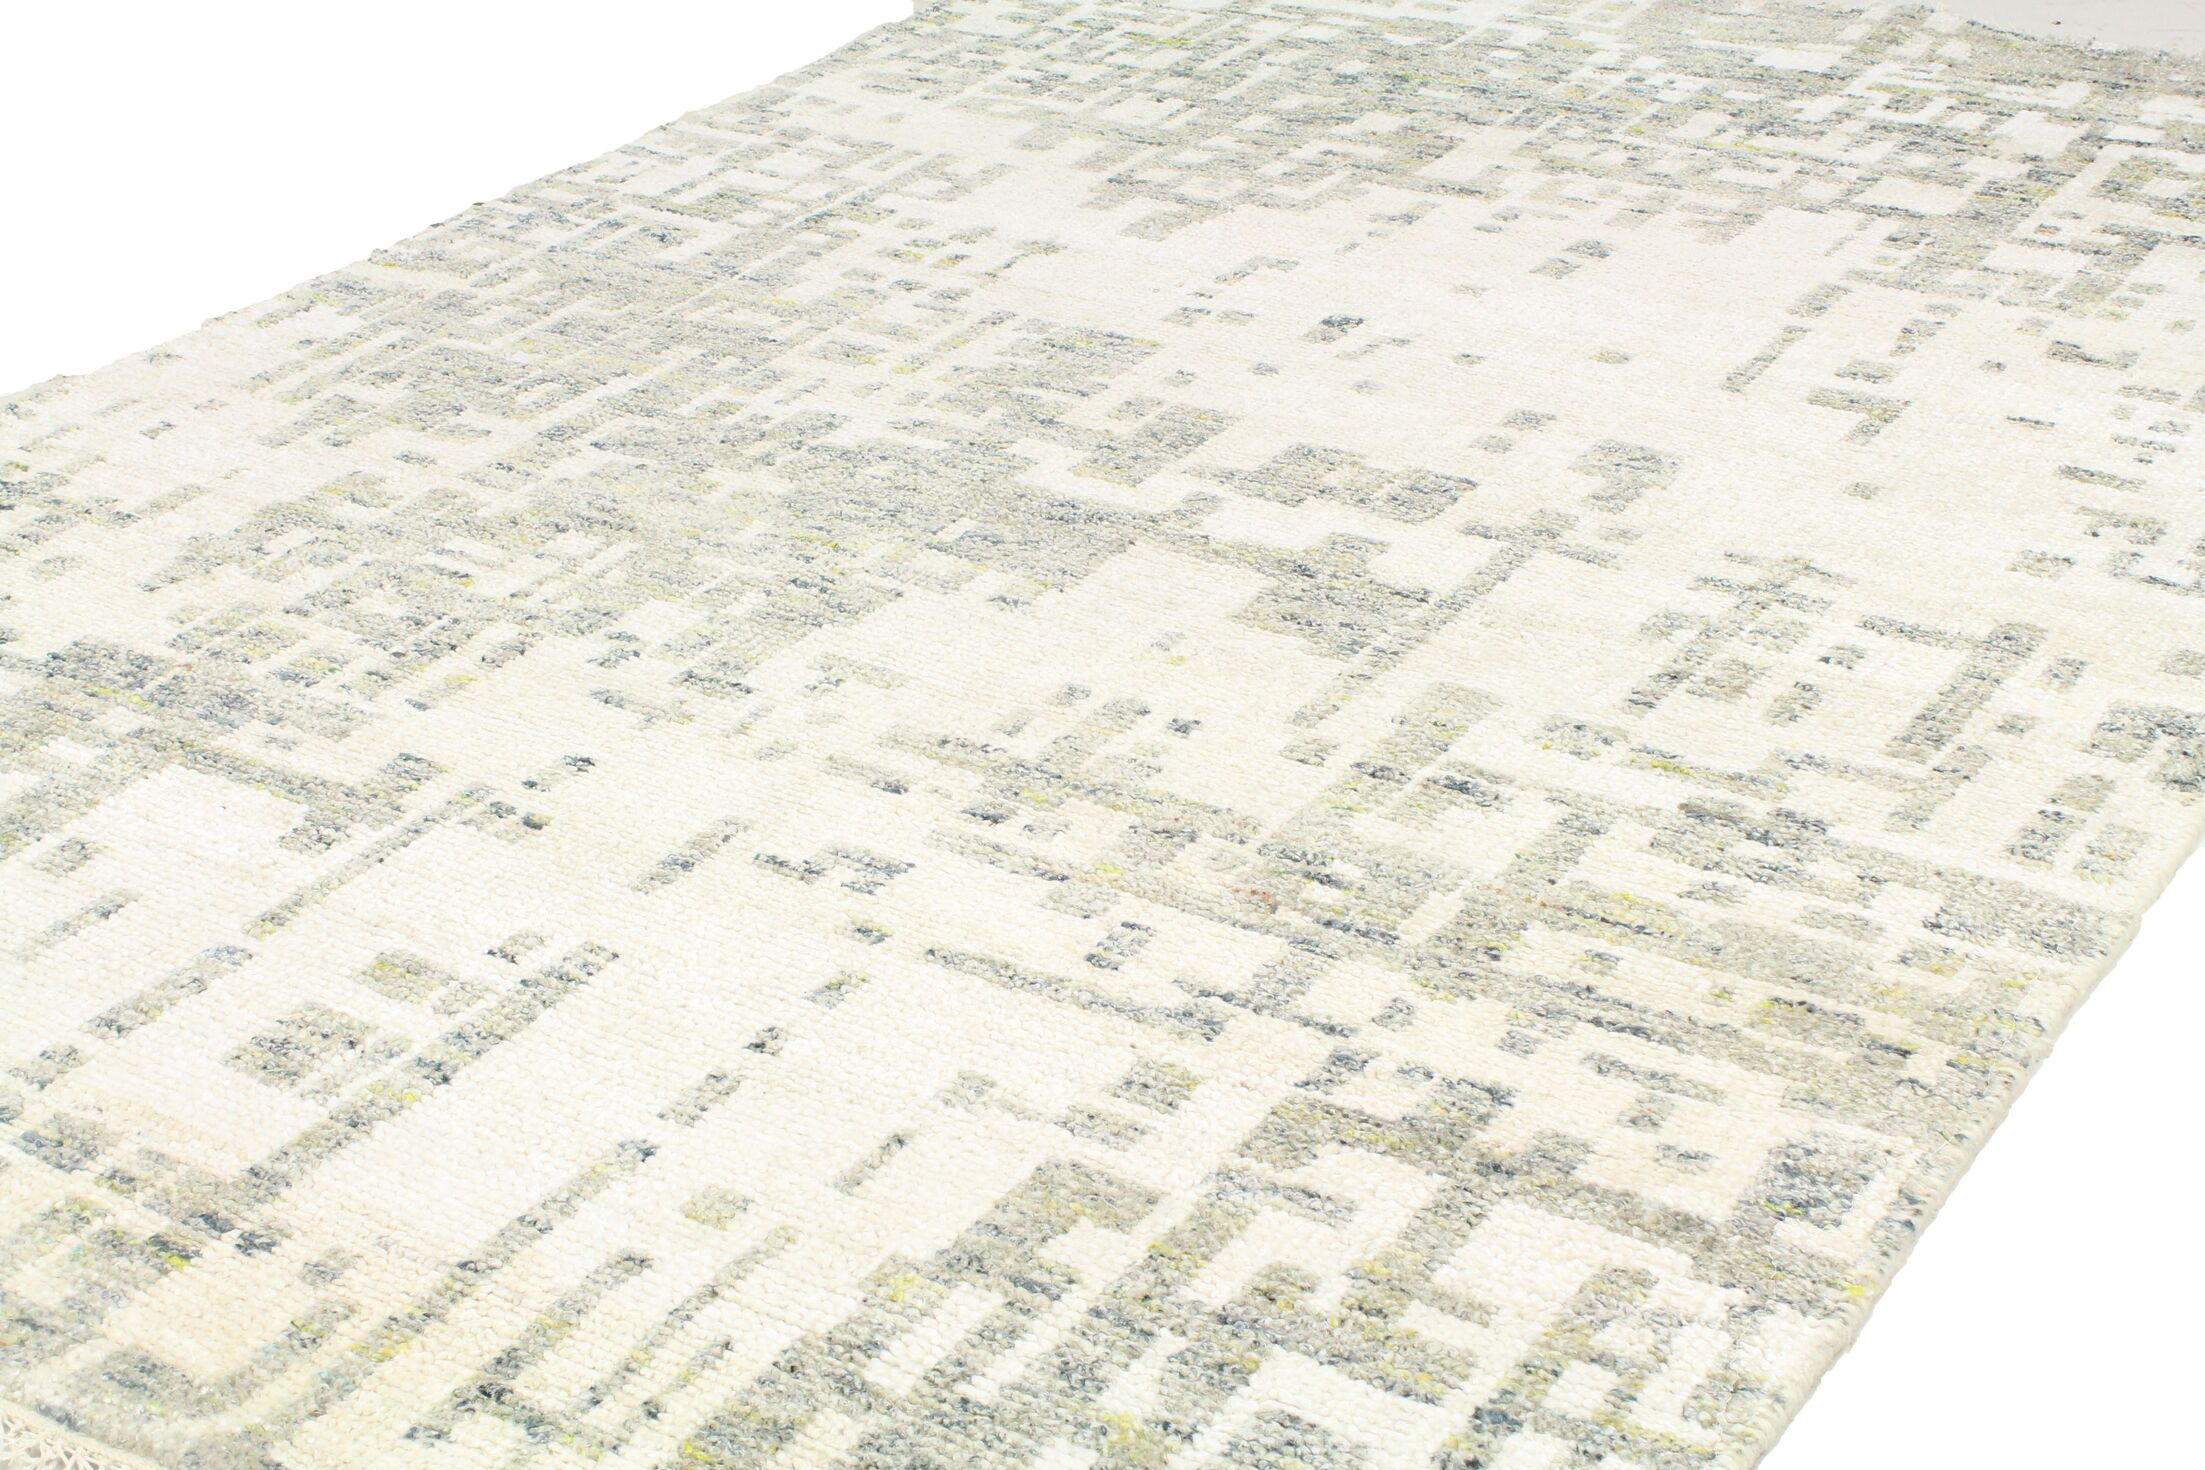 Jagtap Hand Knotted Cotton Ivory/Gray Area Rug Size: Rectangle 3'6